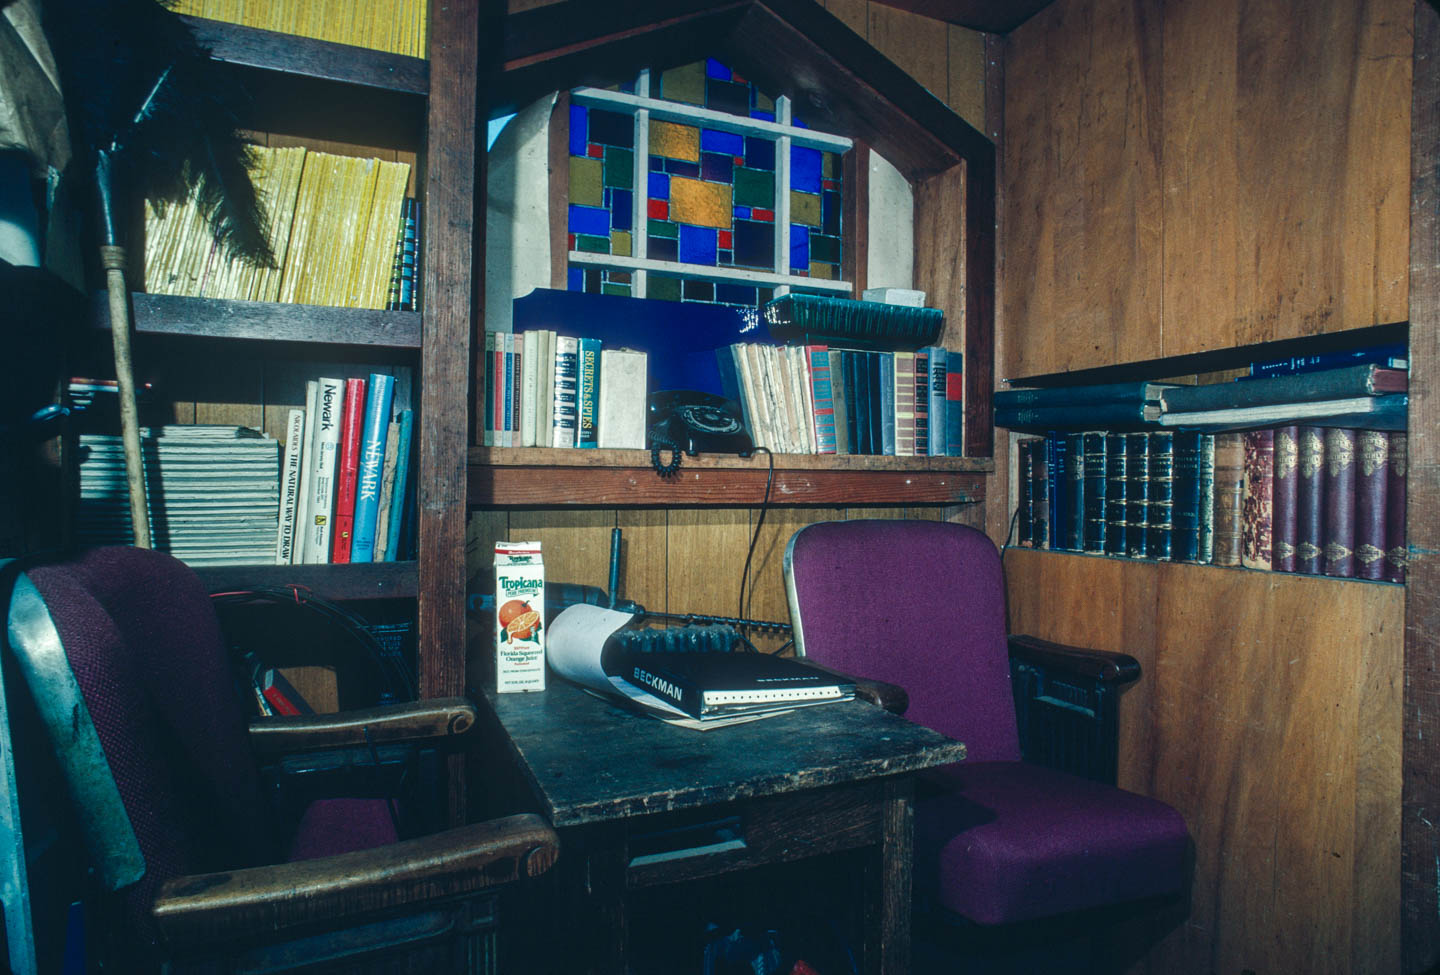 1-Office in the ark compound, Bergen Street at 14th Ave., Newark, 1986